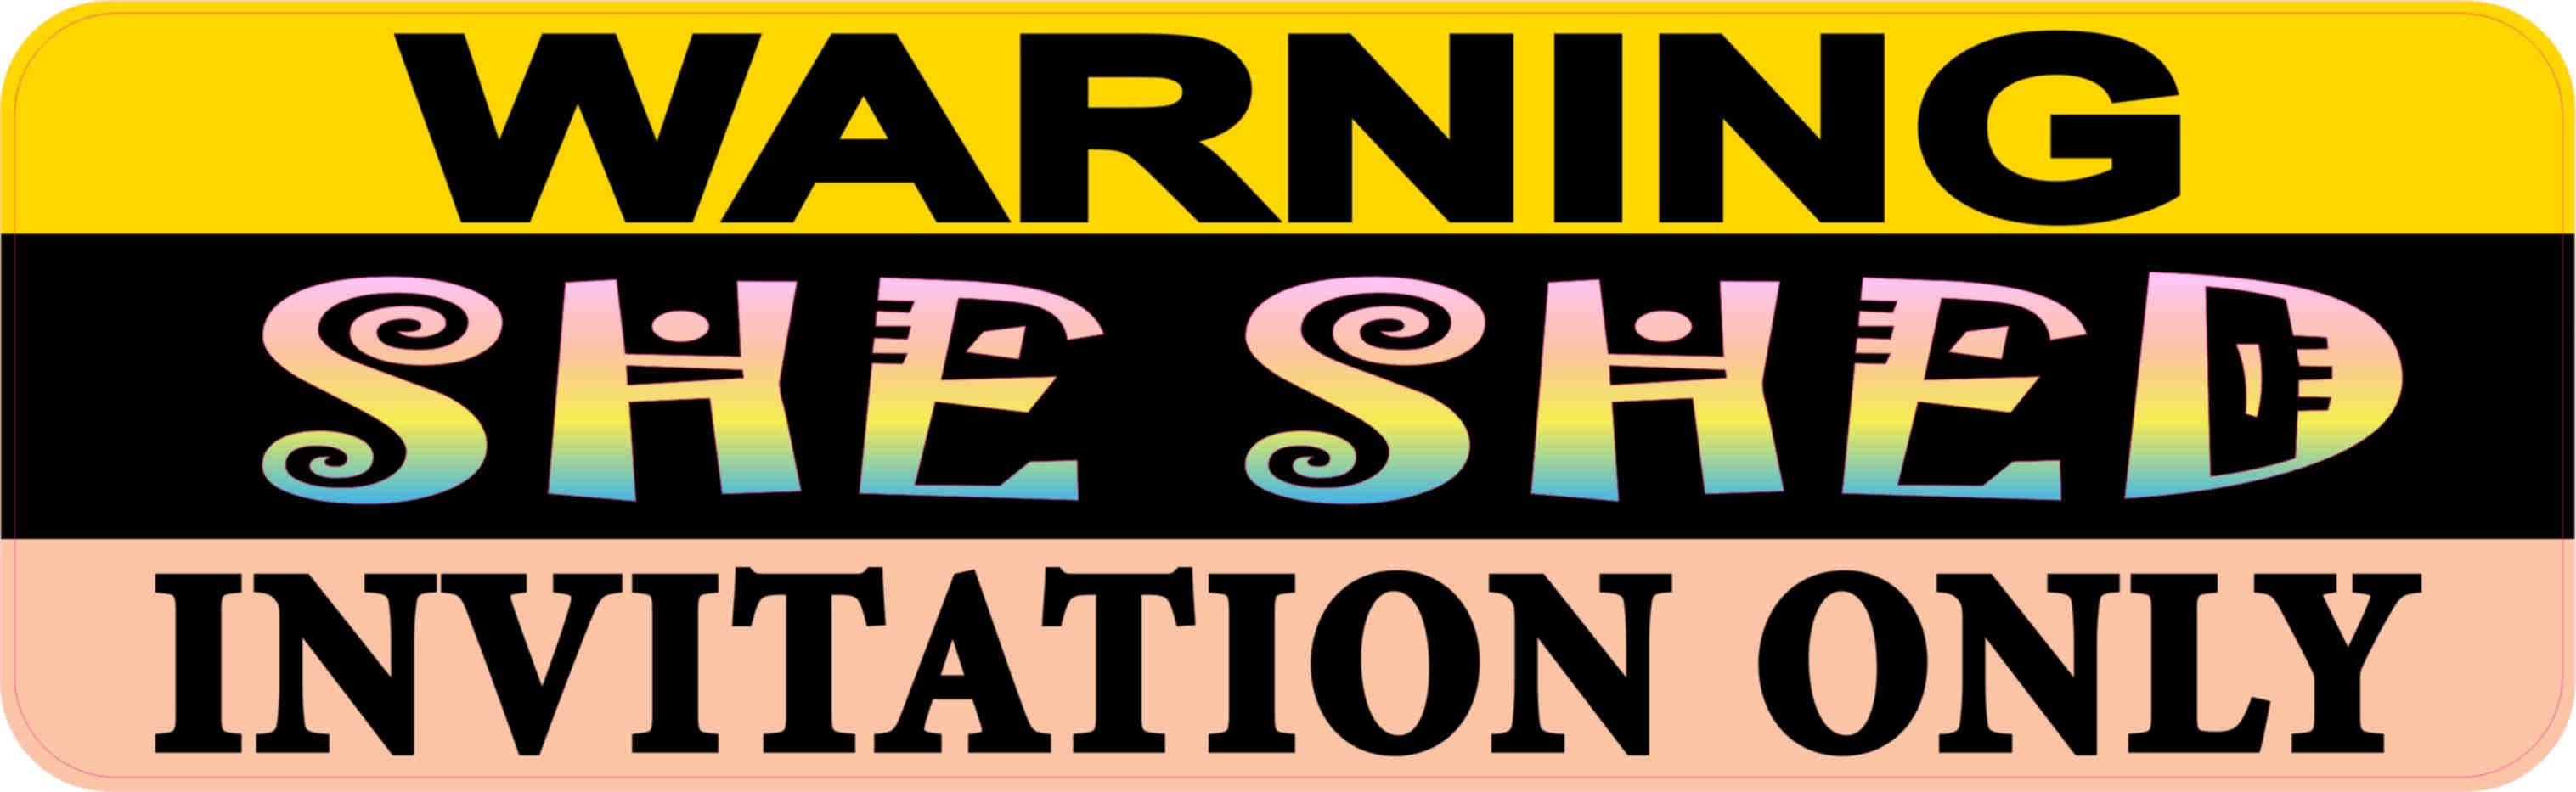 10in x 3in warning she shed invitation only sticker vinyl sign door decal